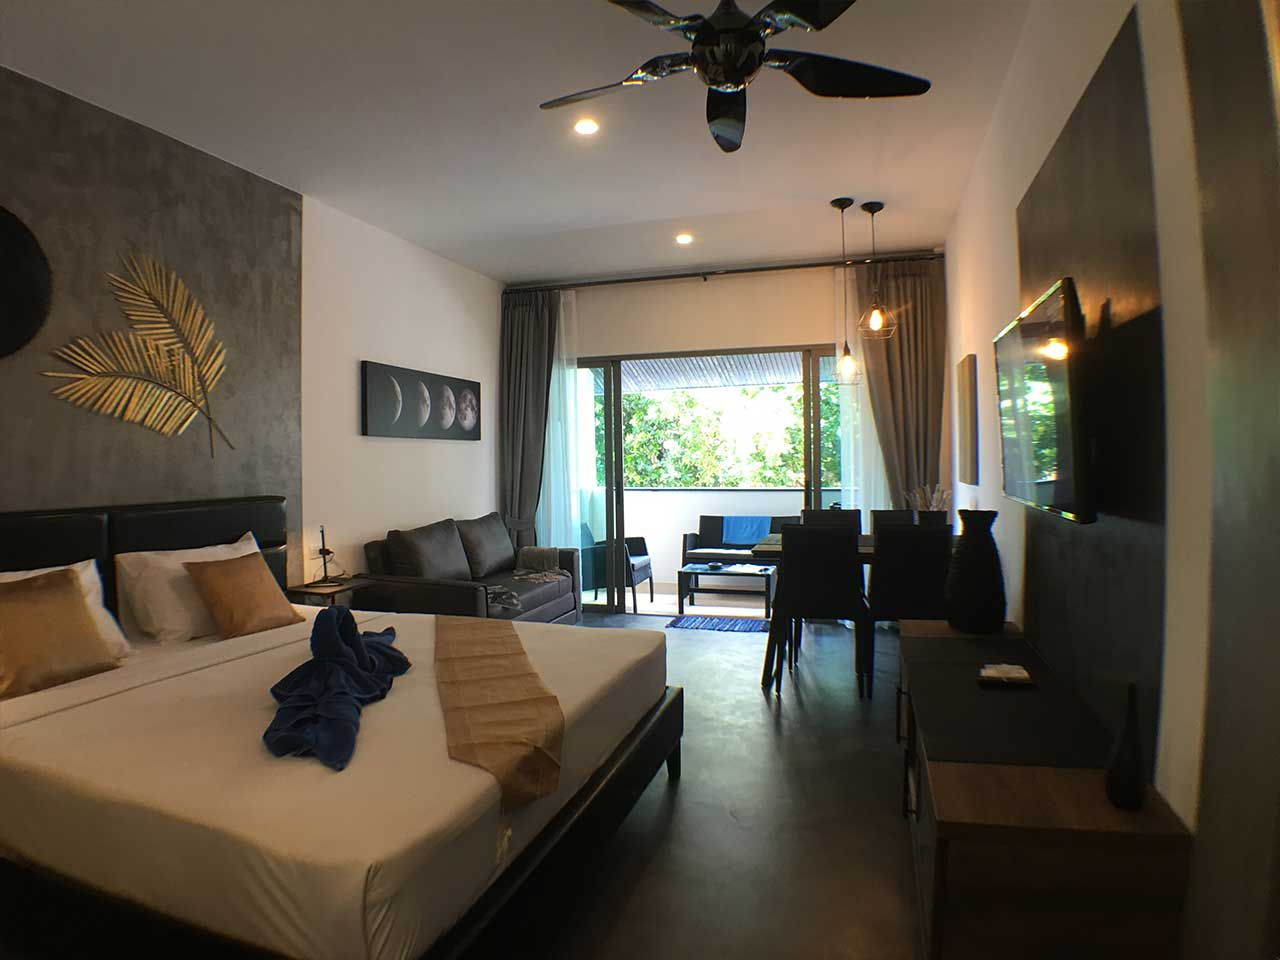 maphrao-resort-kamala-beach-phuket-rooms-interior-STUDIO-23-APARTMENT-09